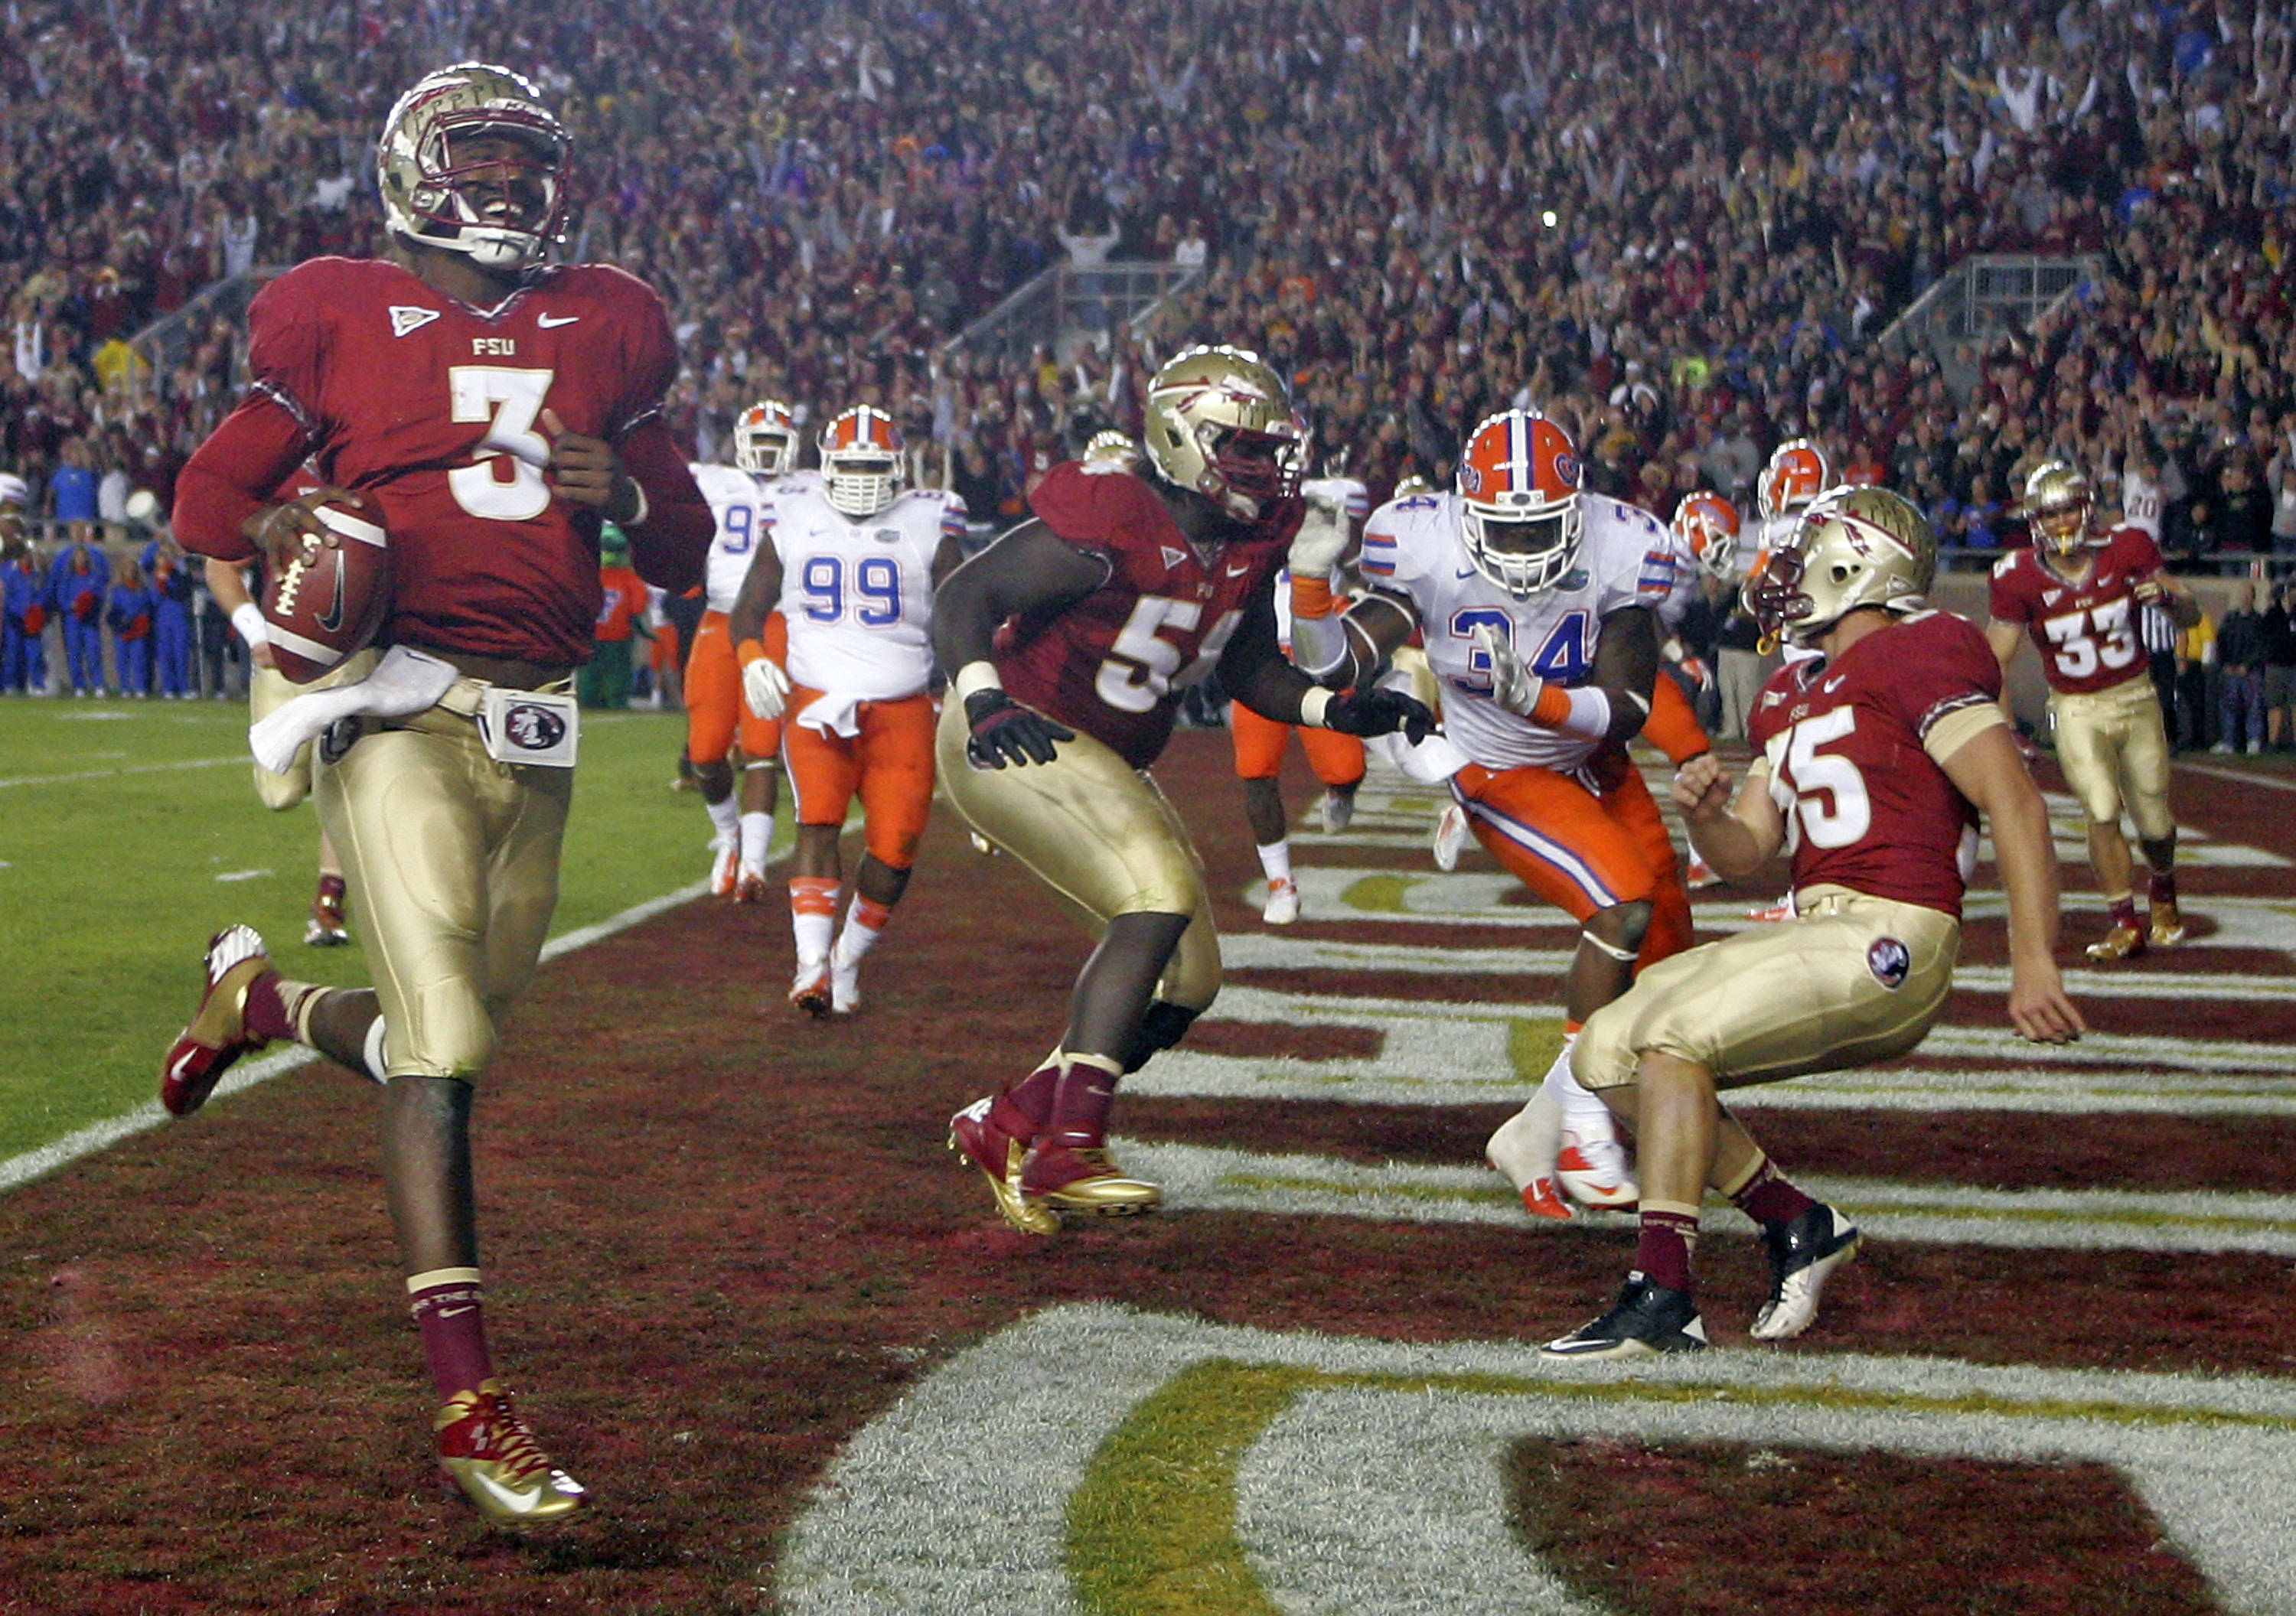 Florida State quarterback EJ Manuel (3) smiles as he scores a touchdown. (AP Photo/Phil Sears)